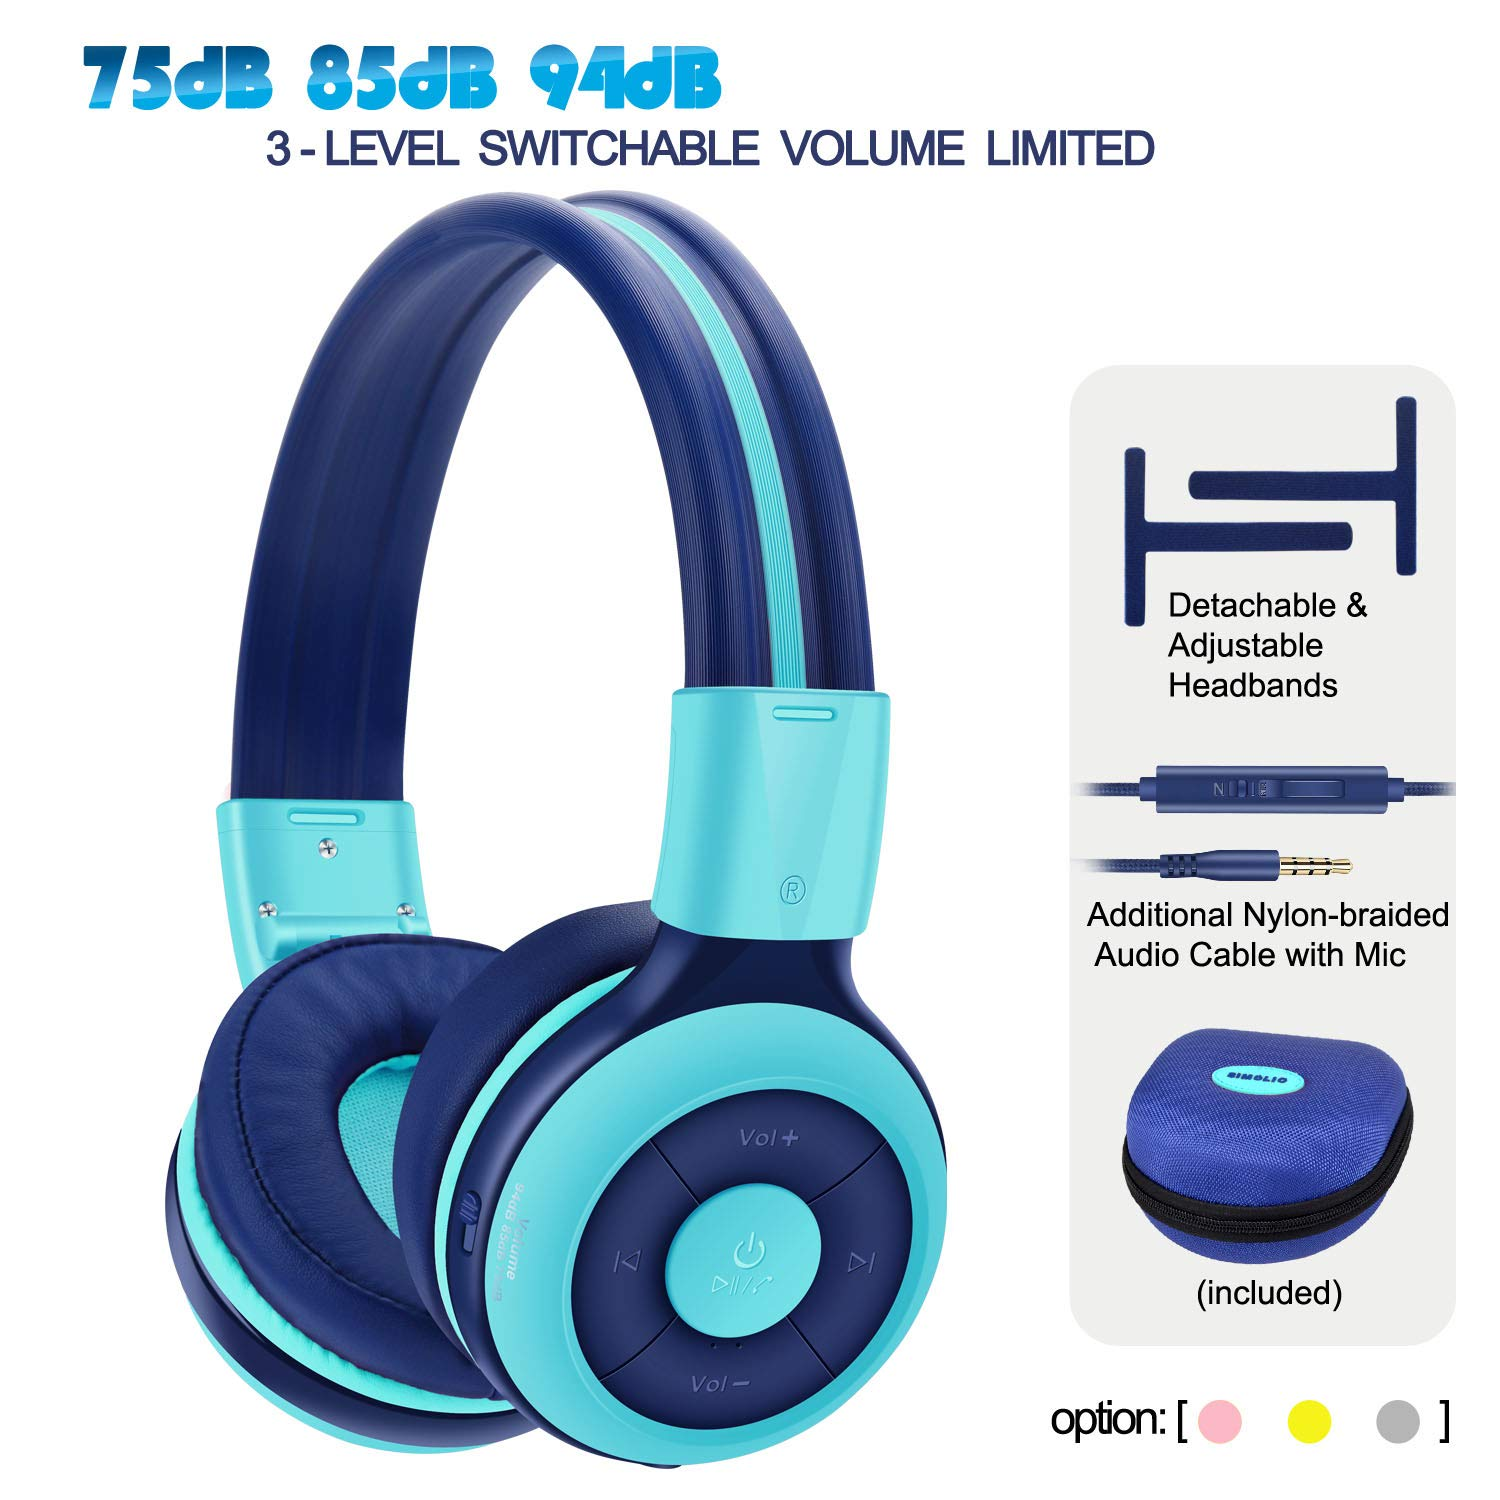 SIMOLIO Bluetooth Kids Headphones with 75dB,85dB,94dB Volume Limit,With Mic Kids Safe Wireless Headphone, Bluetooth Headphone with Share Port for Child, Wired Headset with In-Line Audio Control (Mint)